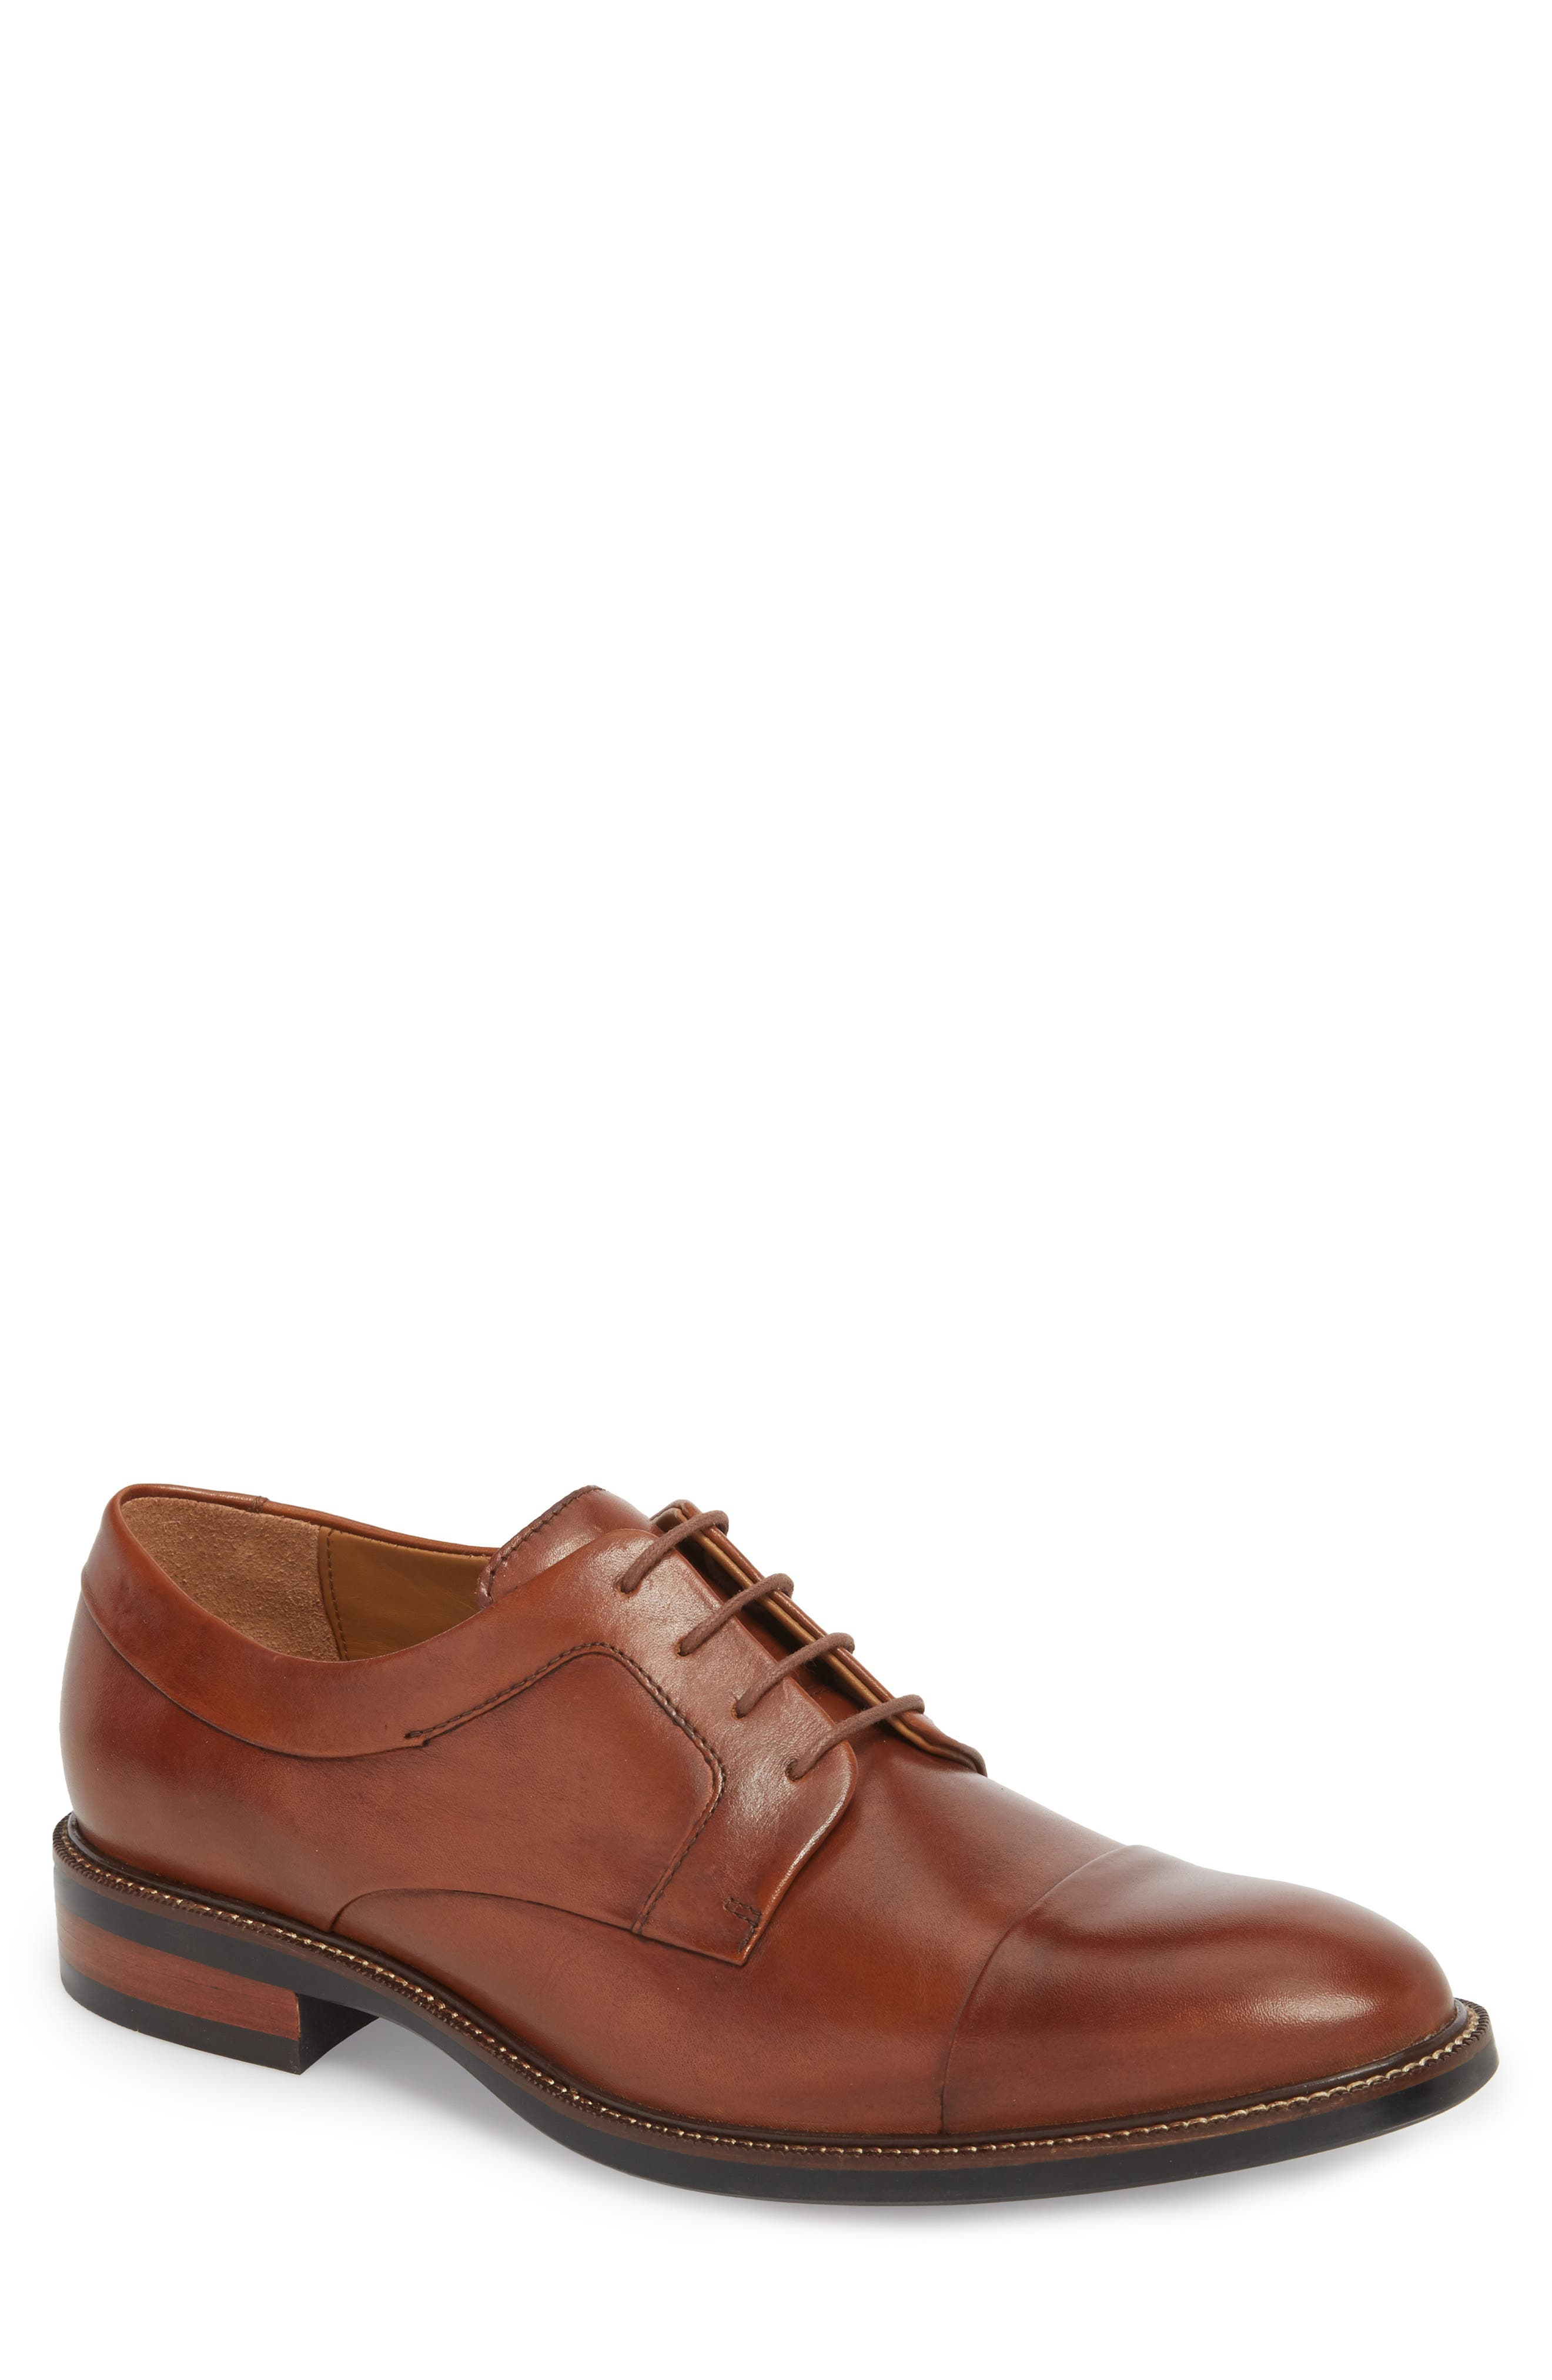 Warren Cap Toe Derby,                         Main,                         color, BRITISH TAN LEATHER